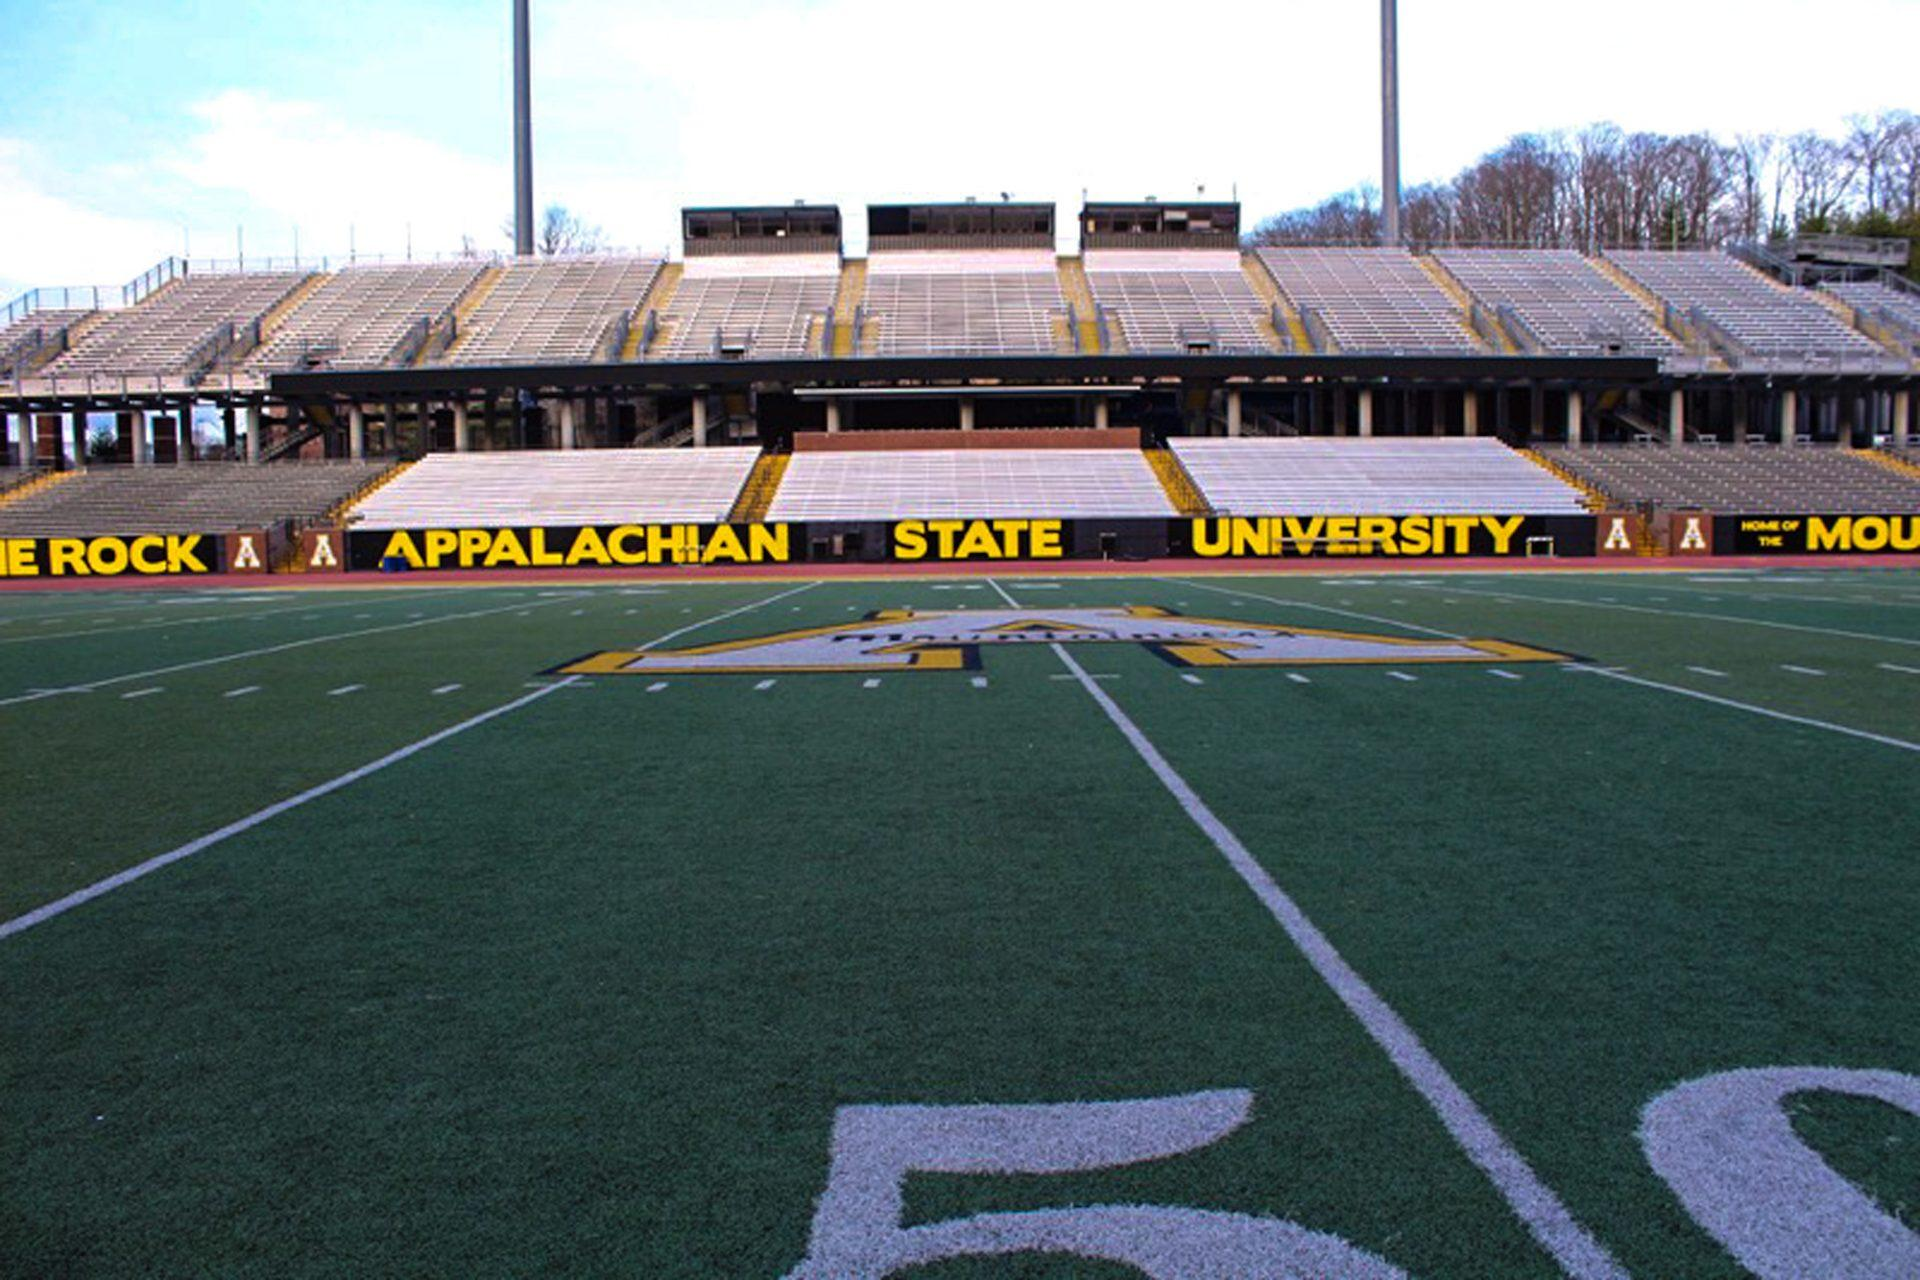 artificial football turf. Artificial Turf Makes Athletic Fields Easier To Maintain - The Appalachian Online Football